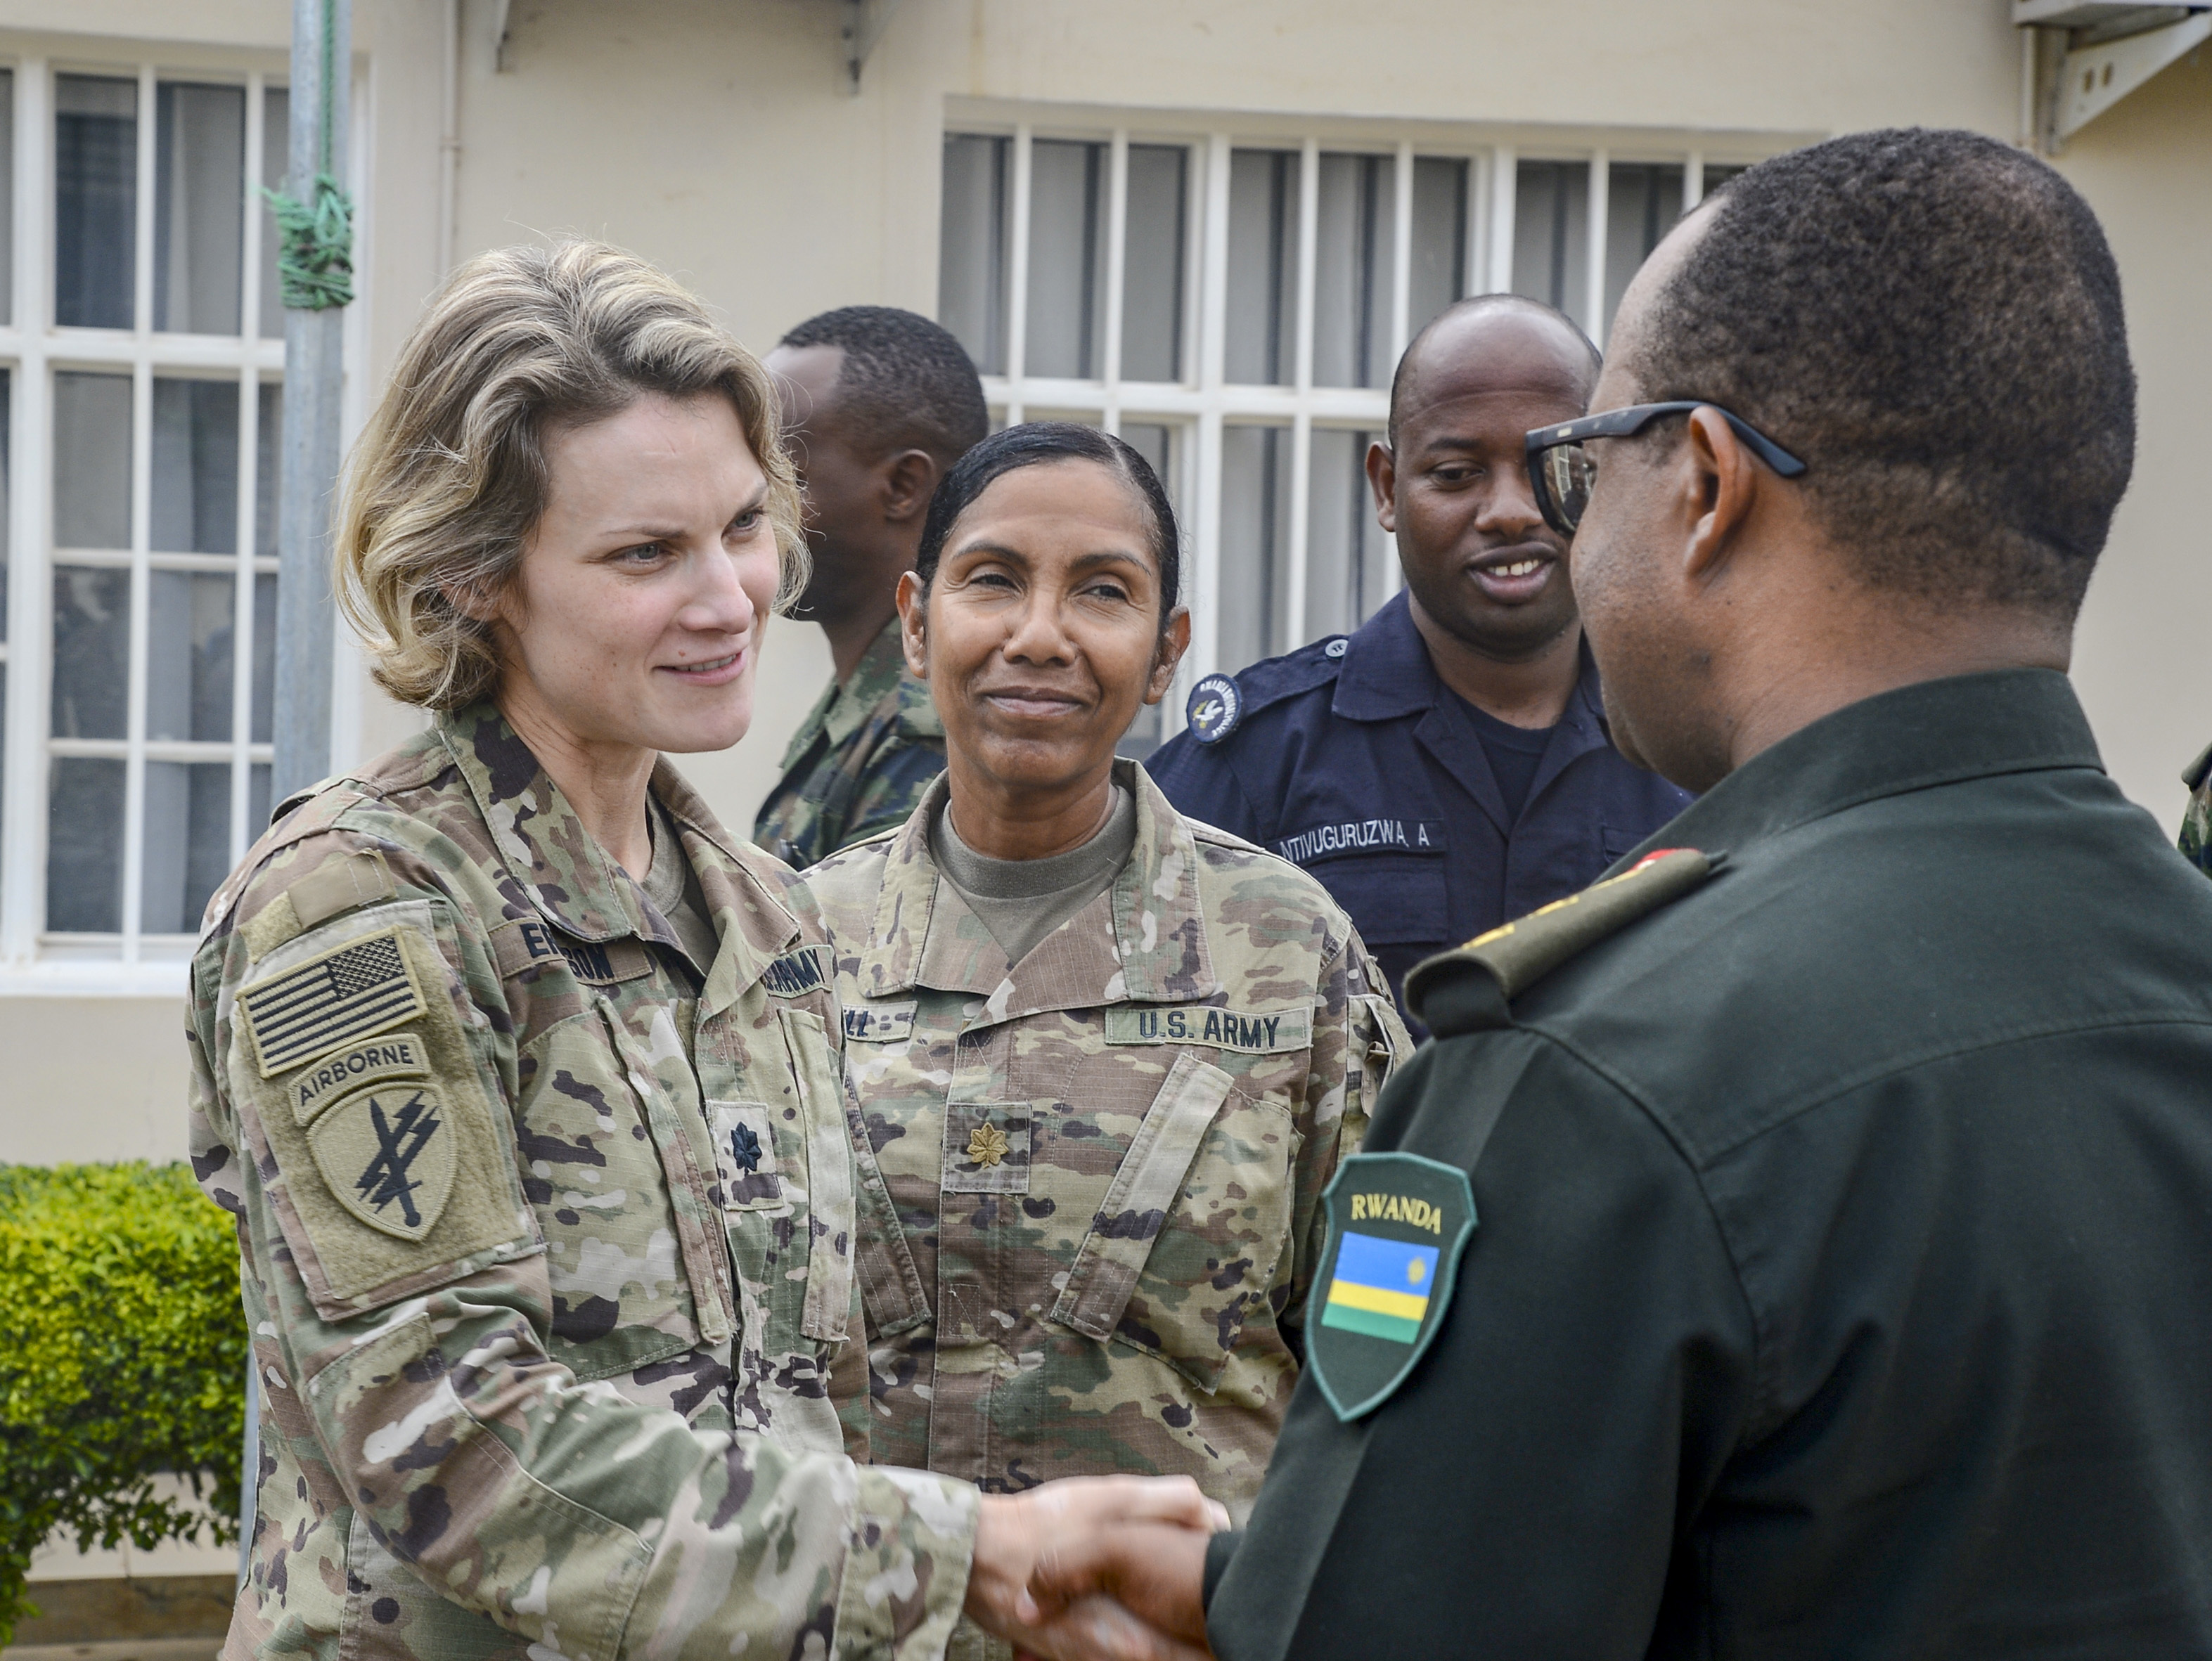 U.S. Army Lt. Col. Delnora Erickson, left, officer in charge, 403rd Civil Affairs Battalion functional specialty team, assigned to Combined Joint Task Force-Horn of Africa (CJTF-HOA), Camp Lemonnier, Djibouti, and U.S. Army Maj. Dionicia Russell, a public health nurse assigned to the 403rd Civil Affairs Battalion, meet with Rwanda Defence Force Col. Eugene Ngoga, Rwanda Military Hospital (RMH) clinical director, at the RMH in Kigali, Rwanda, Nov. 30, 2018.  Erickson and Russell were at RMH participating in a weeklong subject matter expert exchange alongside U.S. military medical personnel assigned to CJTF-HOA and Landstuhl Regional Health Center, Germany. (U.S. Navy photo by Mass Communication Specialist 2nd Class Timothy M. Ahearn)